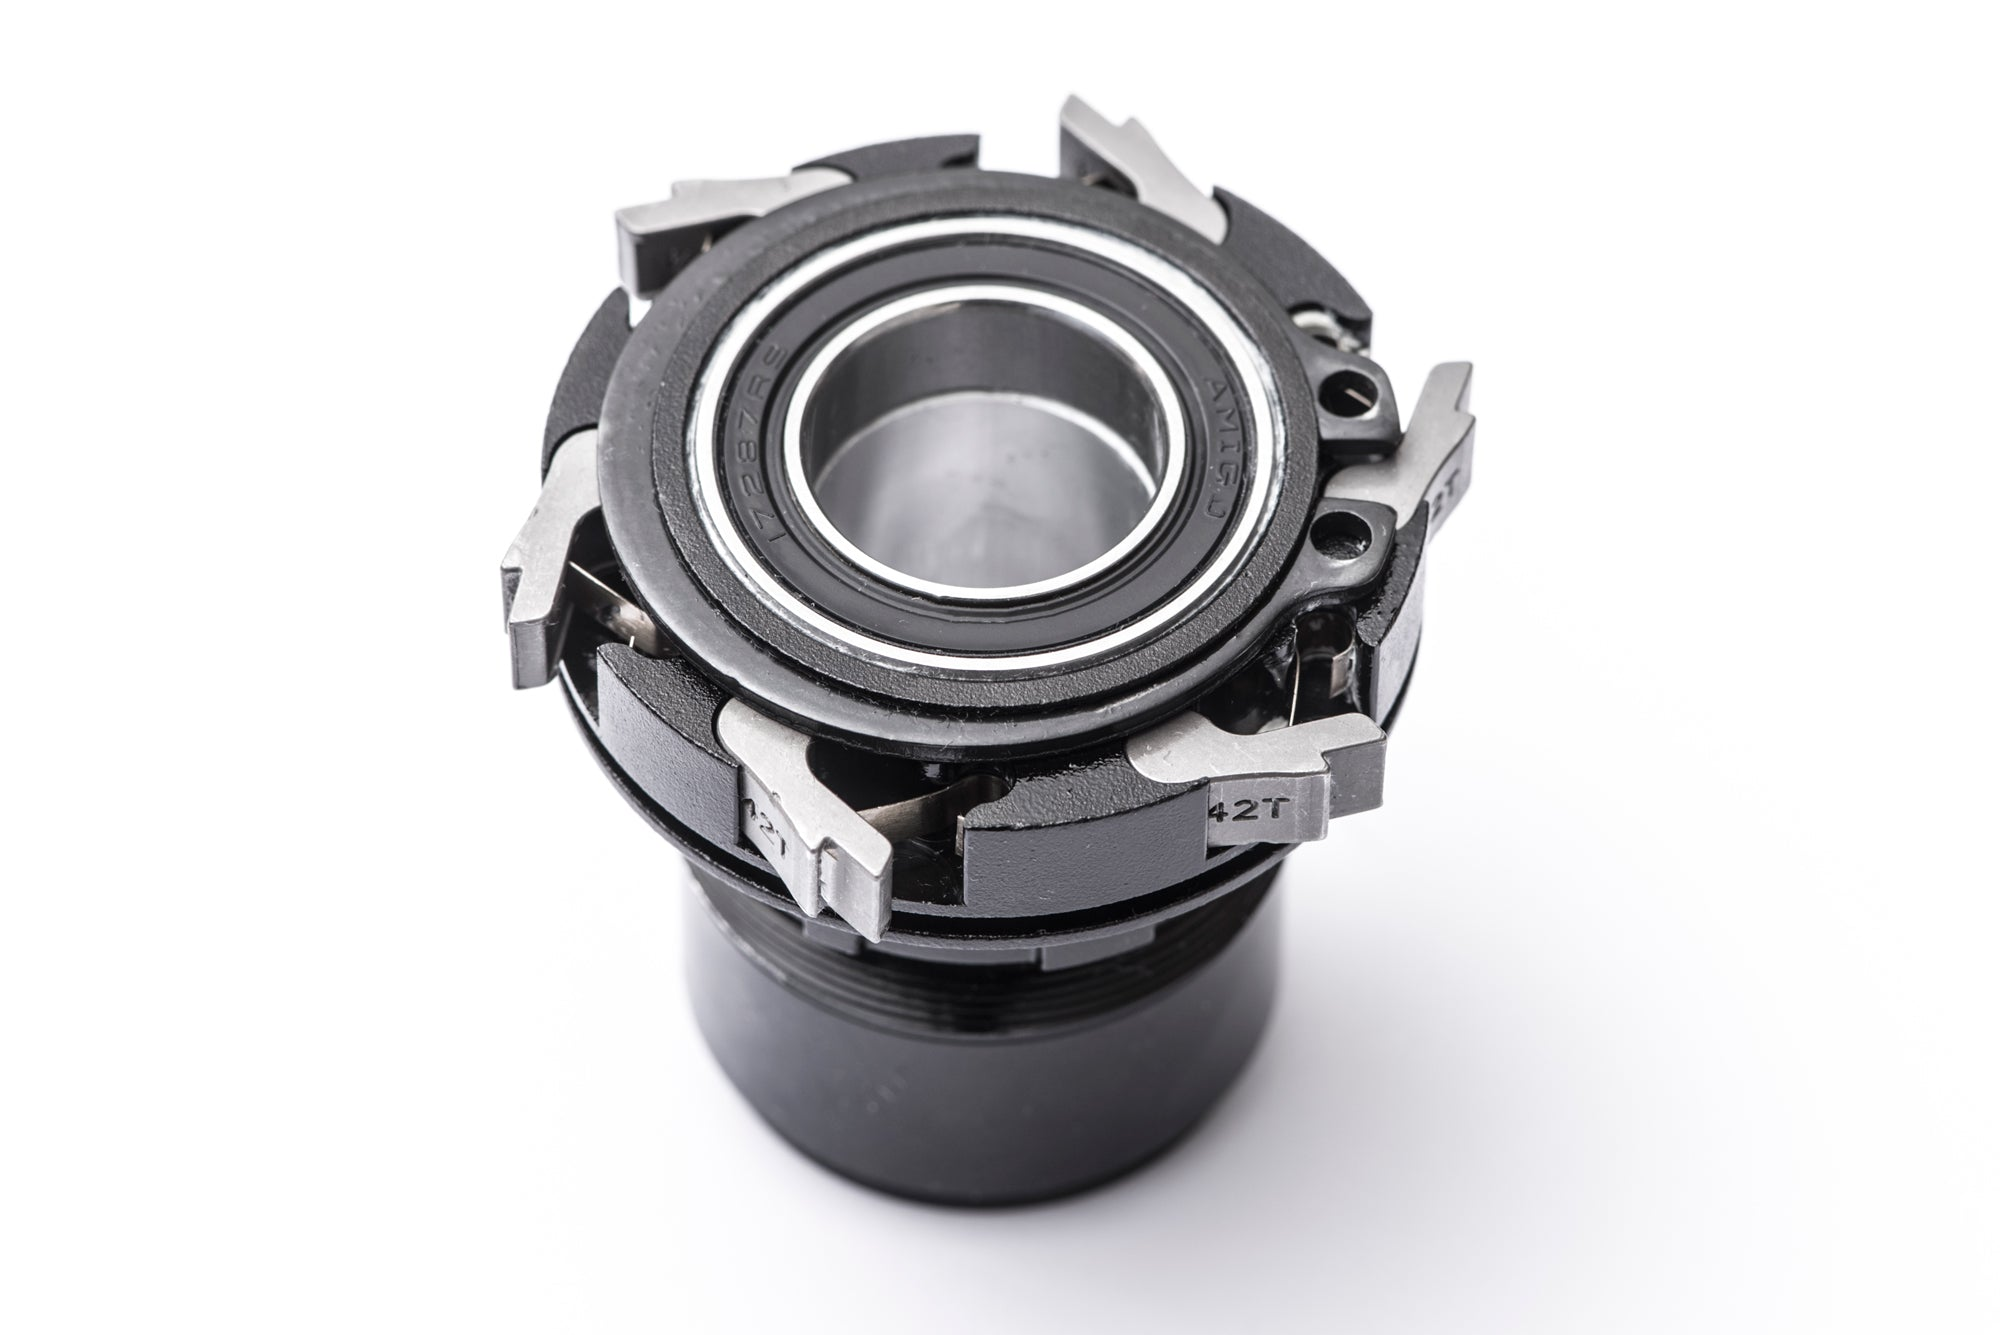 <h1>Freehub Body</h1><i>Choose between SRAM/Shimano 8/9/10/11 or SRAM XD to be fitted to your TrailWide Wheels. Each freehub features six individual MultiPawls to ensure strong engagement, even in the grimmest conditions.</i>